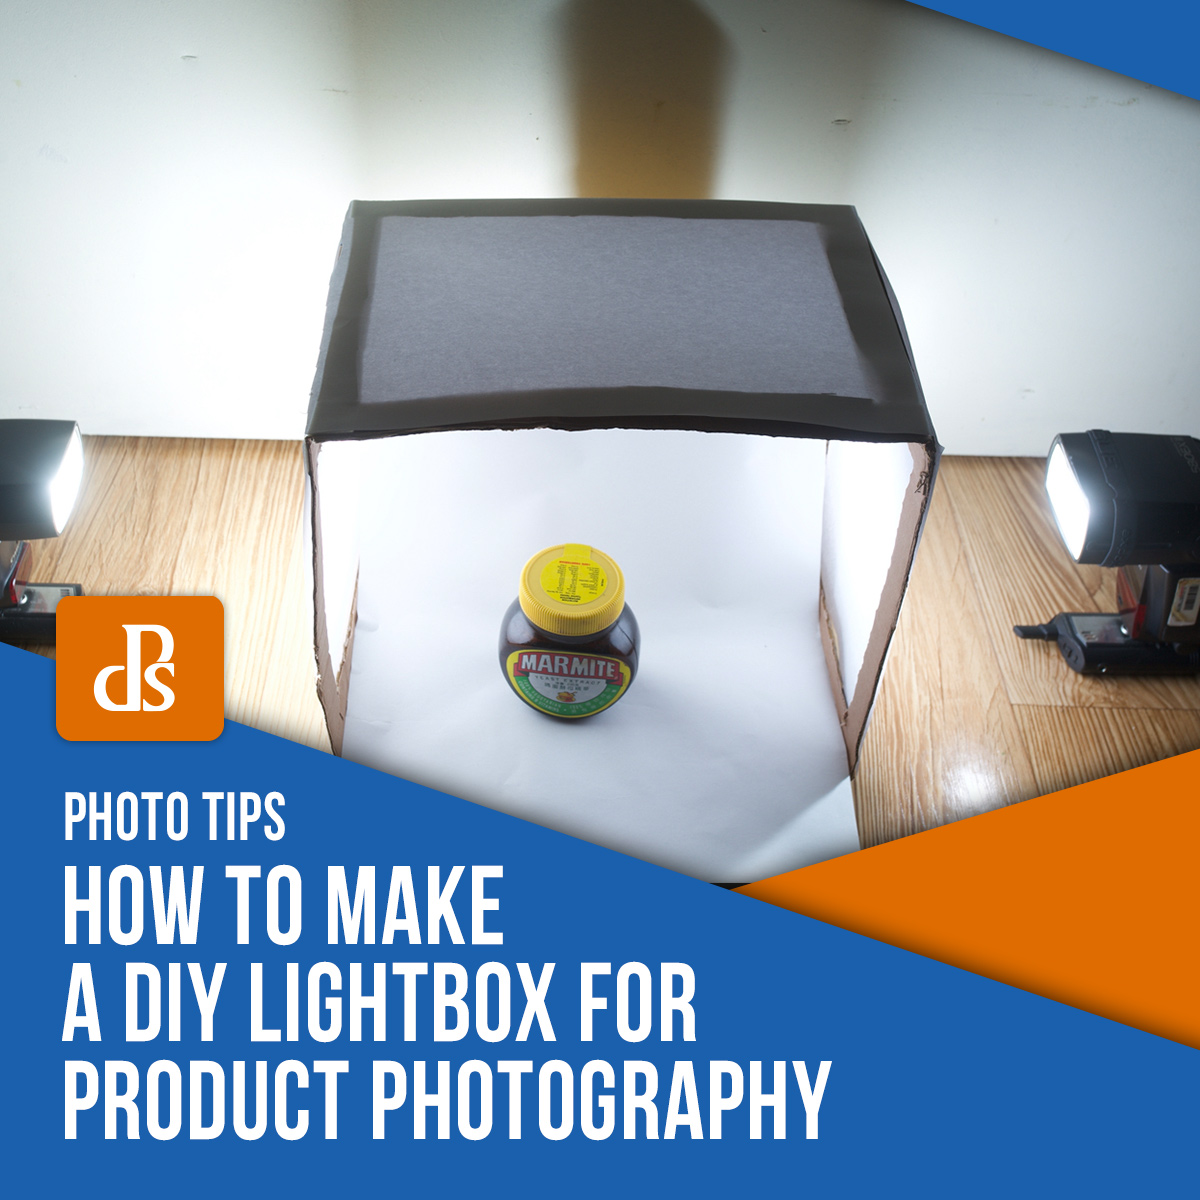 How to Make a DIY Lightbox for Product Photography